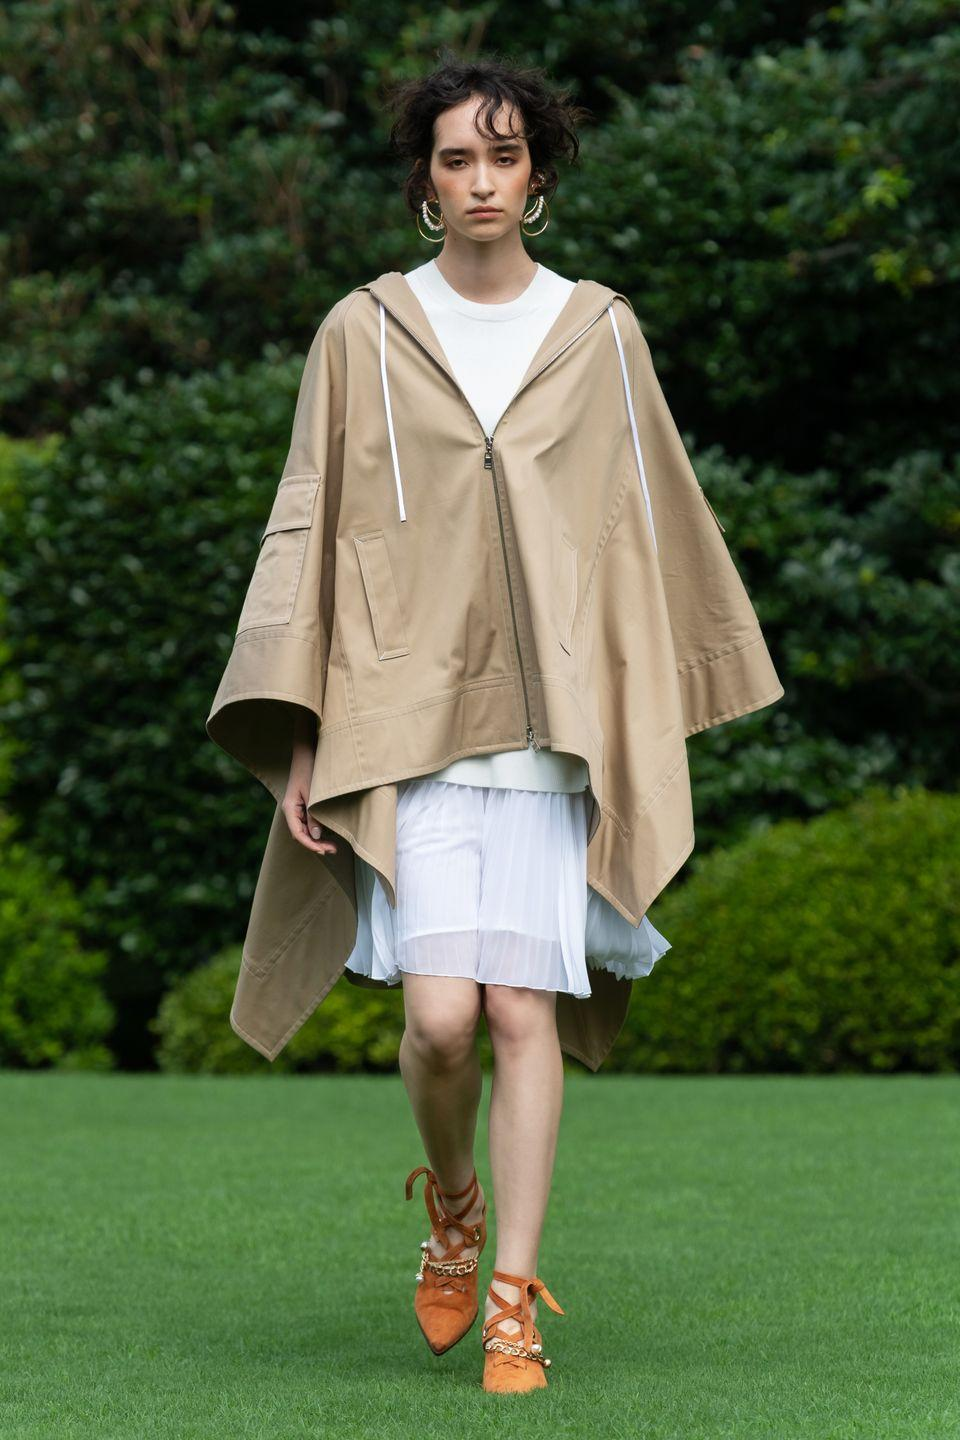 <p>While Hanako Maeda would typically be in New York come September, the designer has been quarantining in Tokyo with her family. Adeam's Spring 2021 show was, therefore, that much more global: filmed live in Japan, and released virtually to time with New York Fashion Week. </p><p>Maeda typically infuses some elements of her heritage into her garments. But this season it was all about summertime in Japan, illustrated through linen and cotton, the fabrics traditionally used to make <em>yukata</em>, the warm weather kimono worn to summer festivals and hot springs. Those fabrications appeared in a myriad of forms, from easy dresses to wide-leg trousers. They were joined by the brand's go-to Japanese crepe and cotton poplin, which were used to create convertible (and comfortable) daytime pieces. In a mid-pandemic world where designers are challenged to dictate what a now sweatpants-obsessed clientele will wear next spring, it seems Maeda has an answer: easy, breezy, effortless silhouettes—in a hopeful palette of soft blues, camel, whites, sunset orange. and rich fuchsia—that are just as comfortable, but feel infinitely more polished than loungewear. —<em>Carrie Goldberg</em></p>